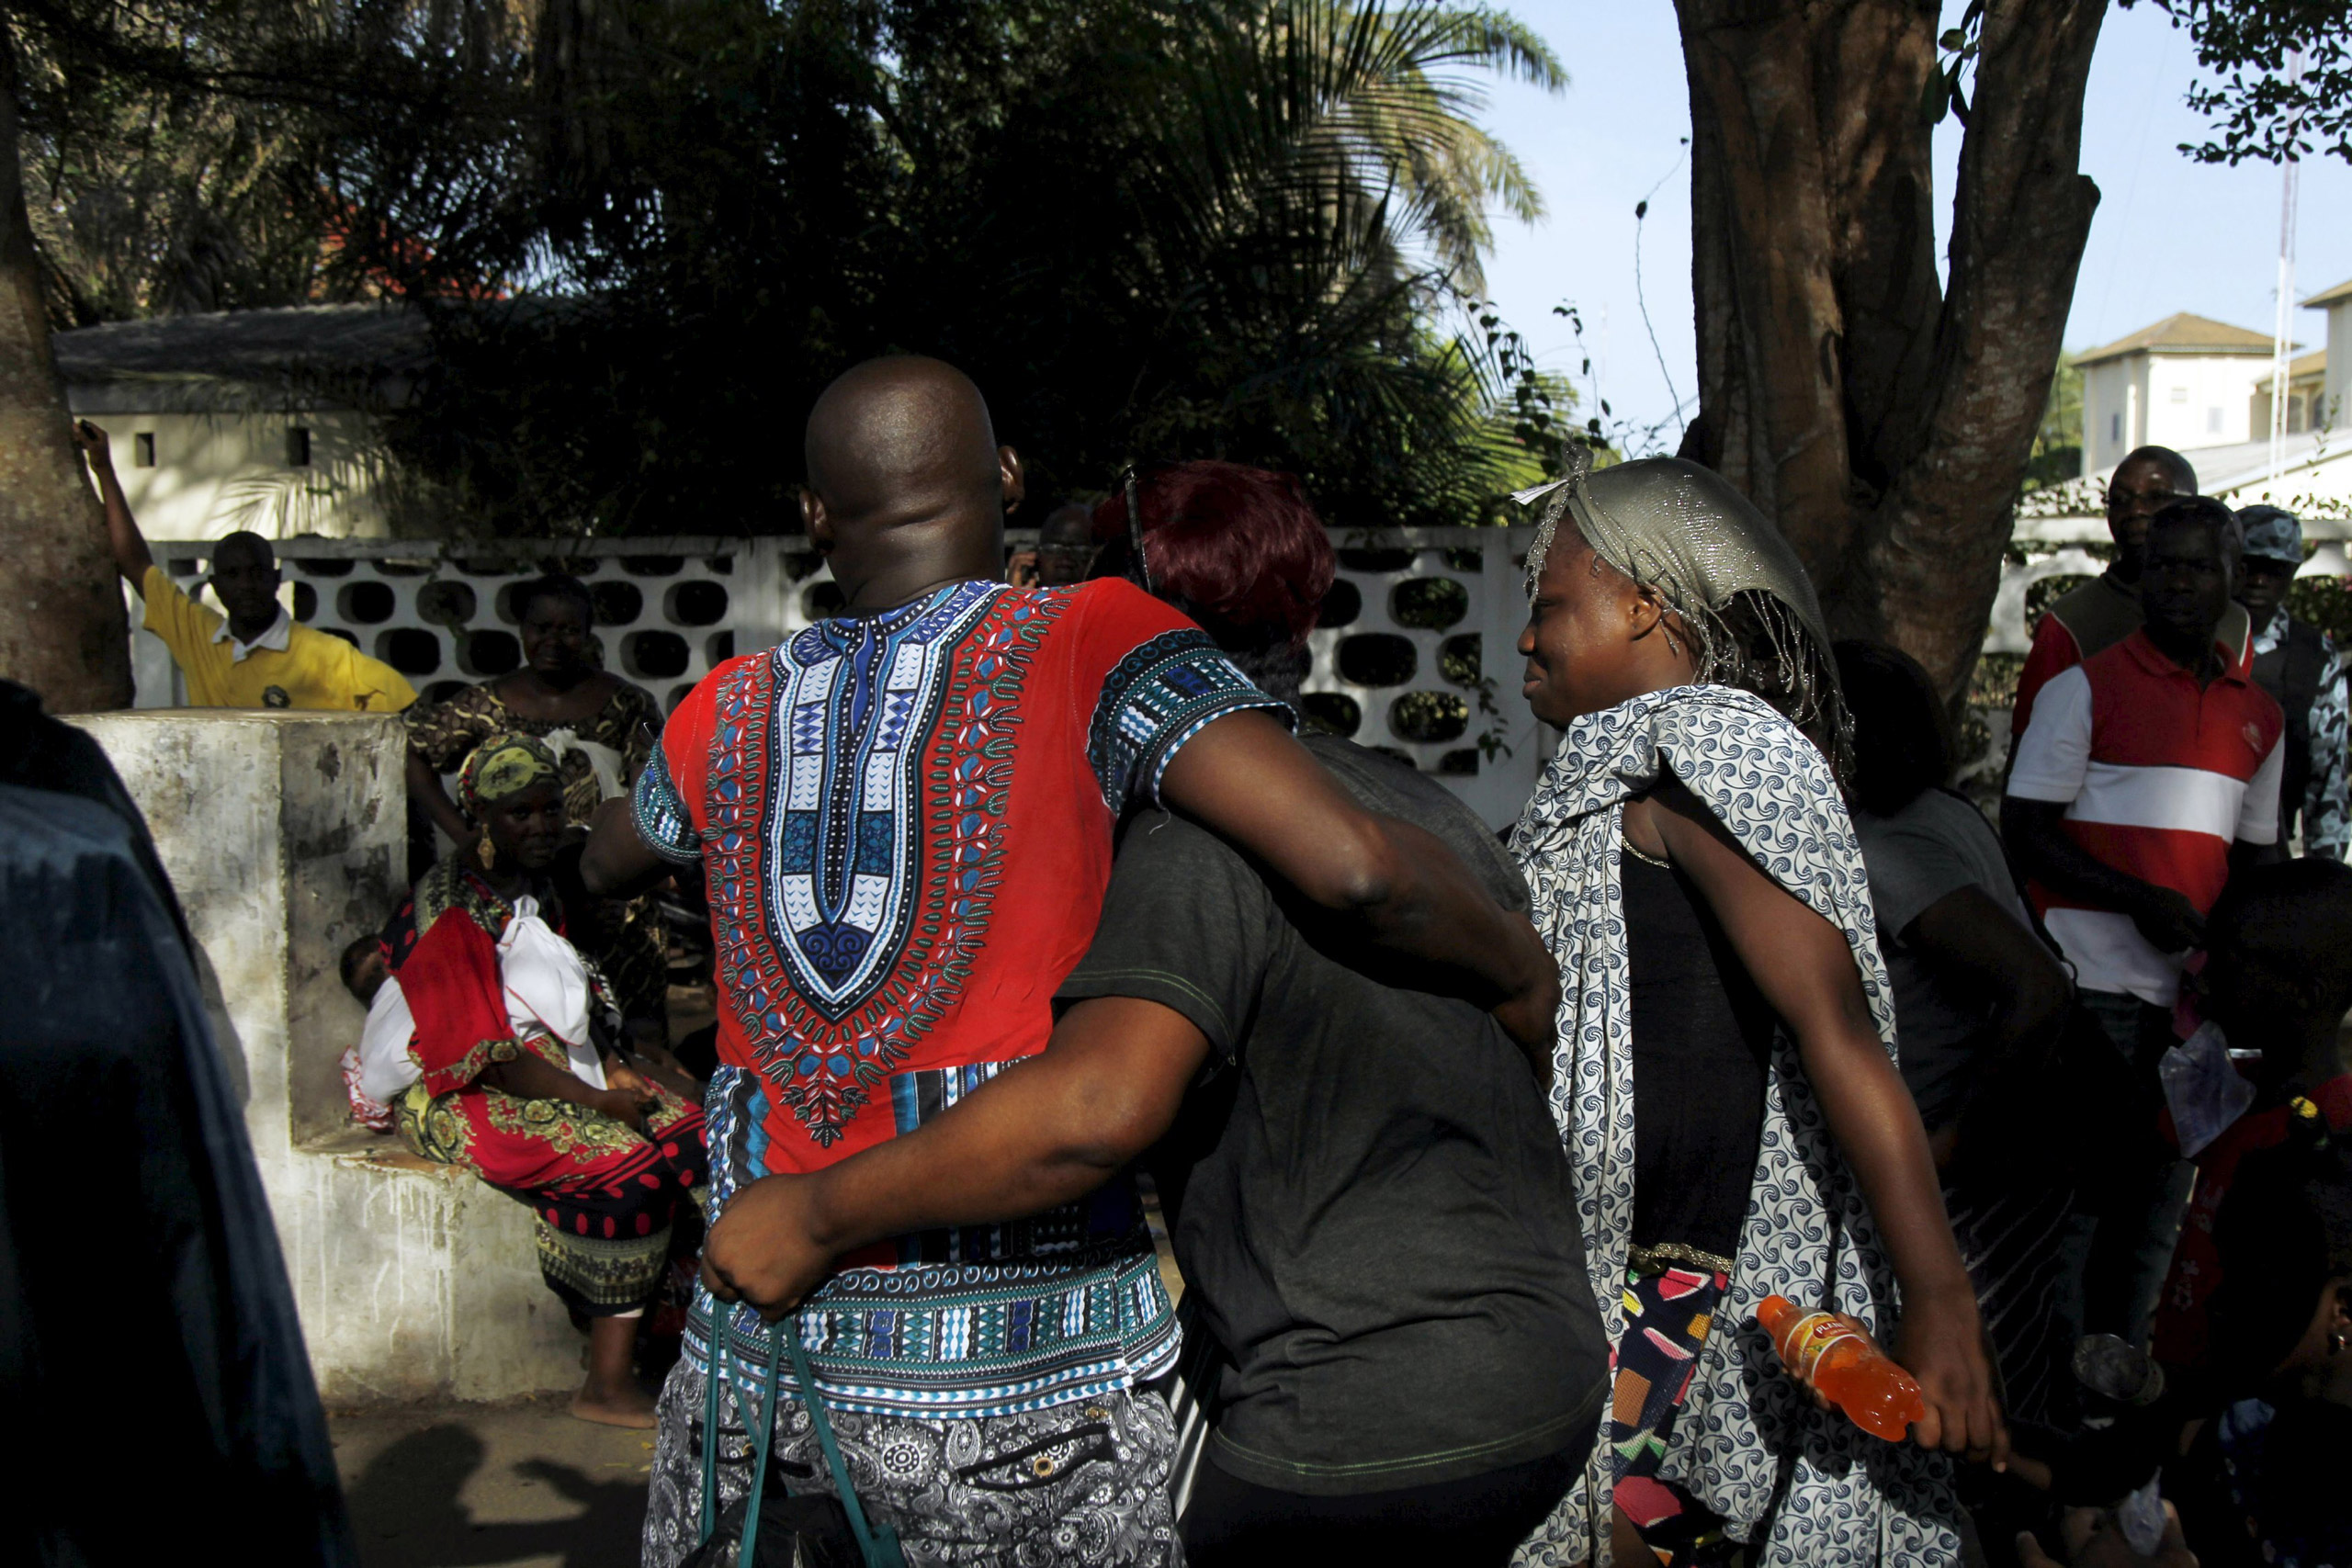 People comfort each other after the attacks in Grand-Bassam, Ivory Coast, on March 13, 2016.